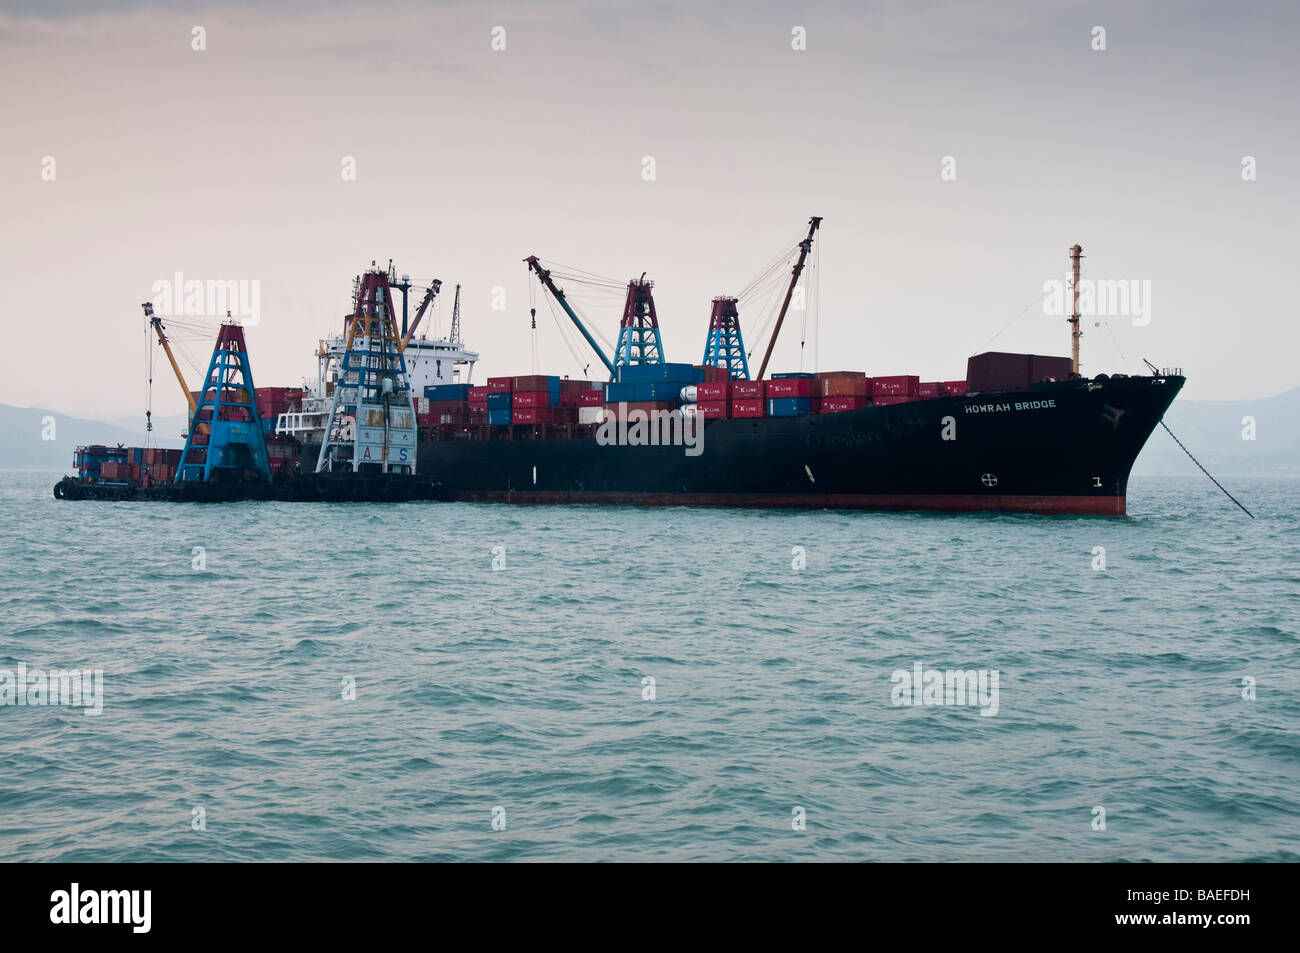 Container ship offloading. - Stock Image